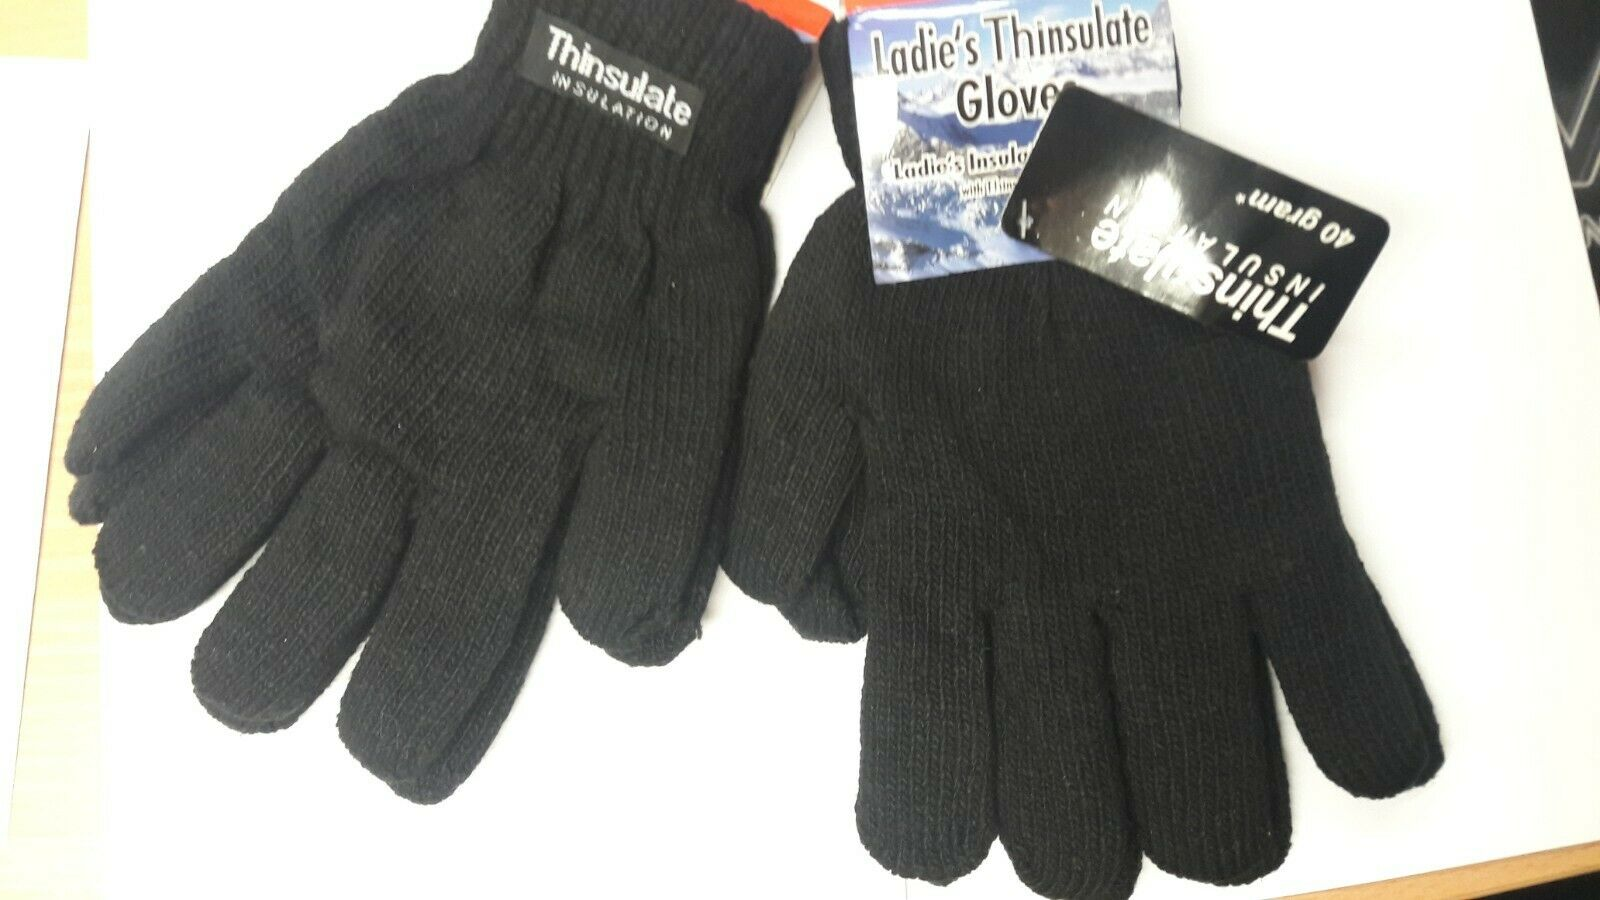 LADIES THERMAL GLOVES-INSULATED GLOVES- THERMAL LINED HEAVY KNIT GLOVE 40 GRAM